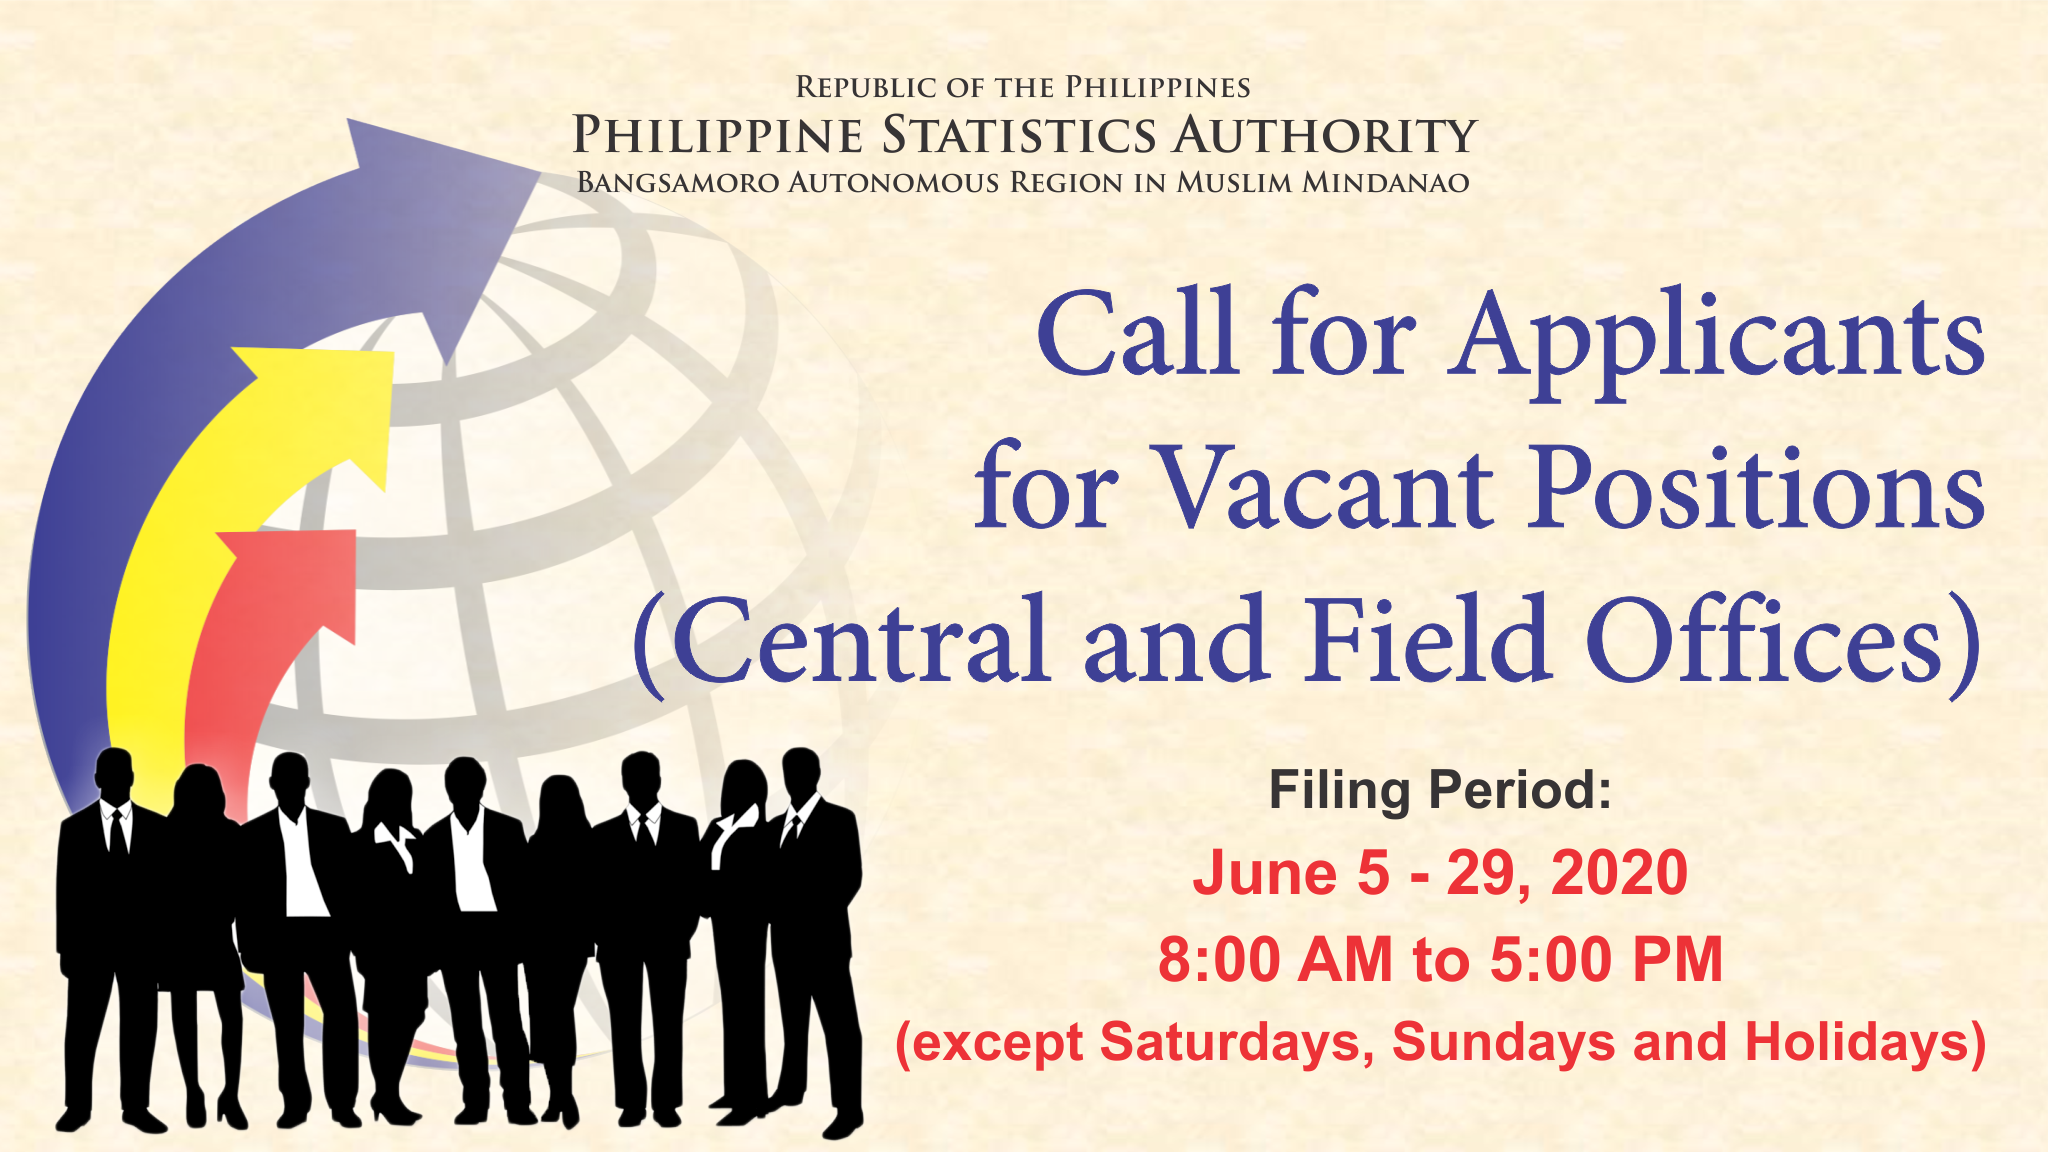 Call for Applicants for Vacant Positions (Central and Field Offices)